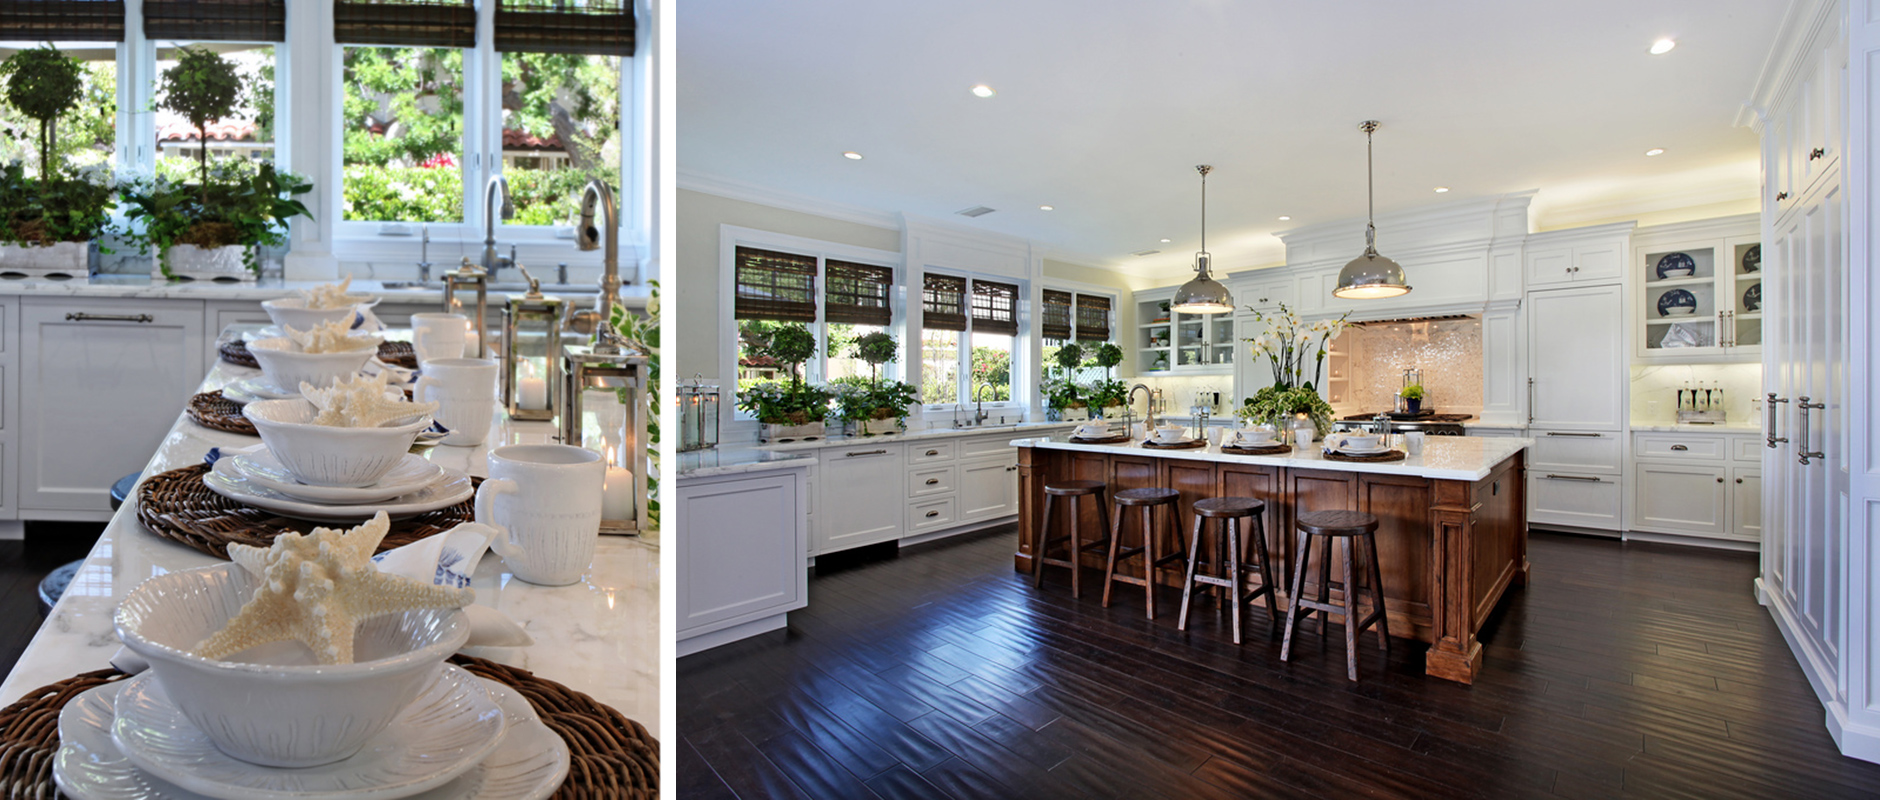 tappingtradition5_kitchen_2x.jpg